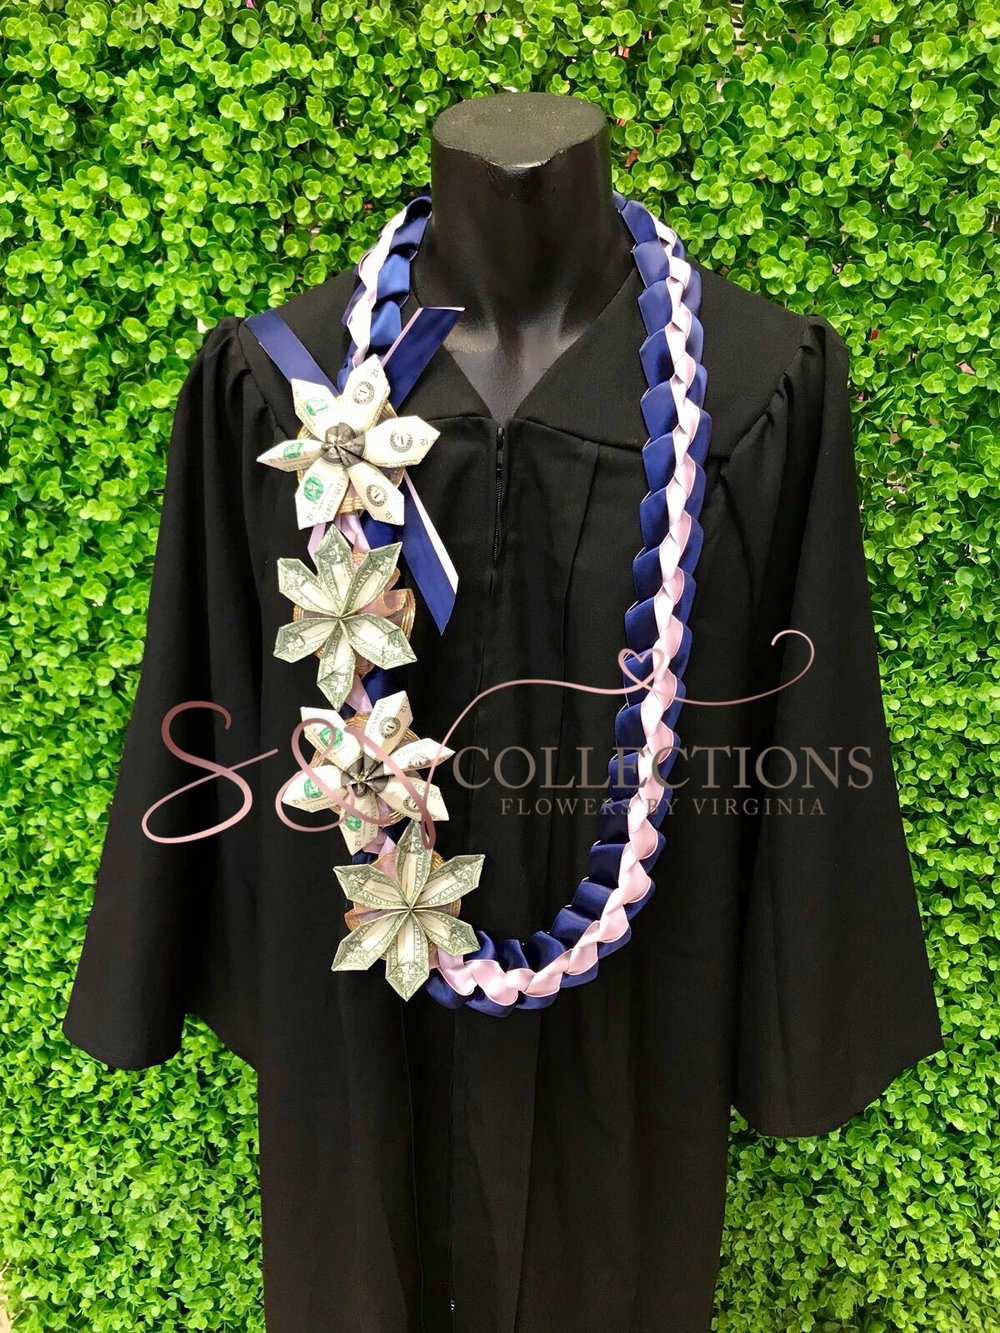 Graduation and Money Leis